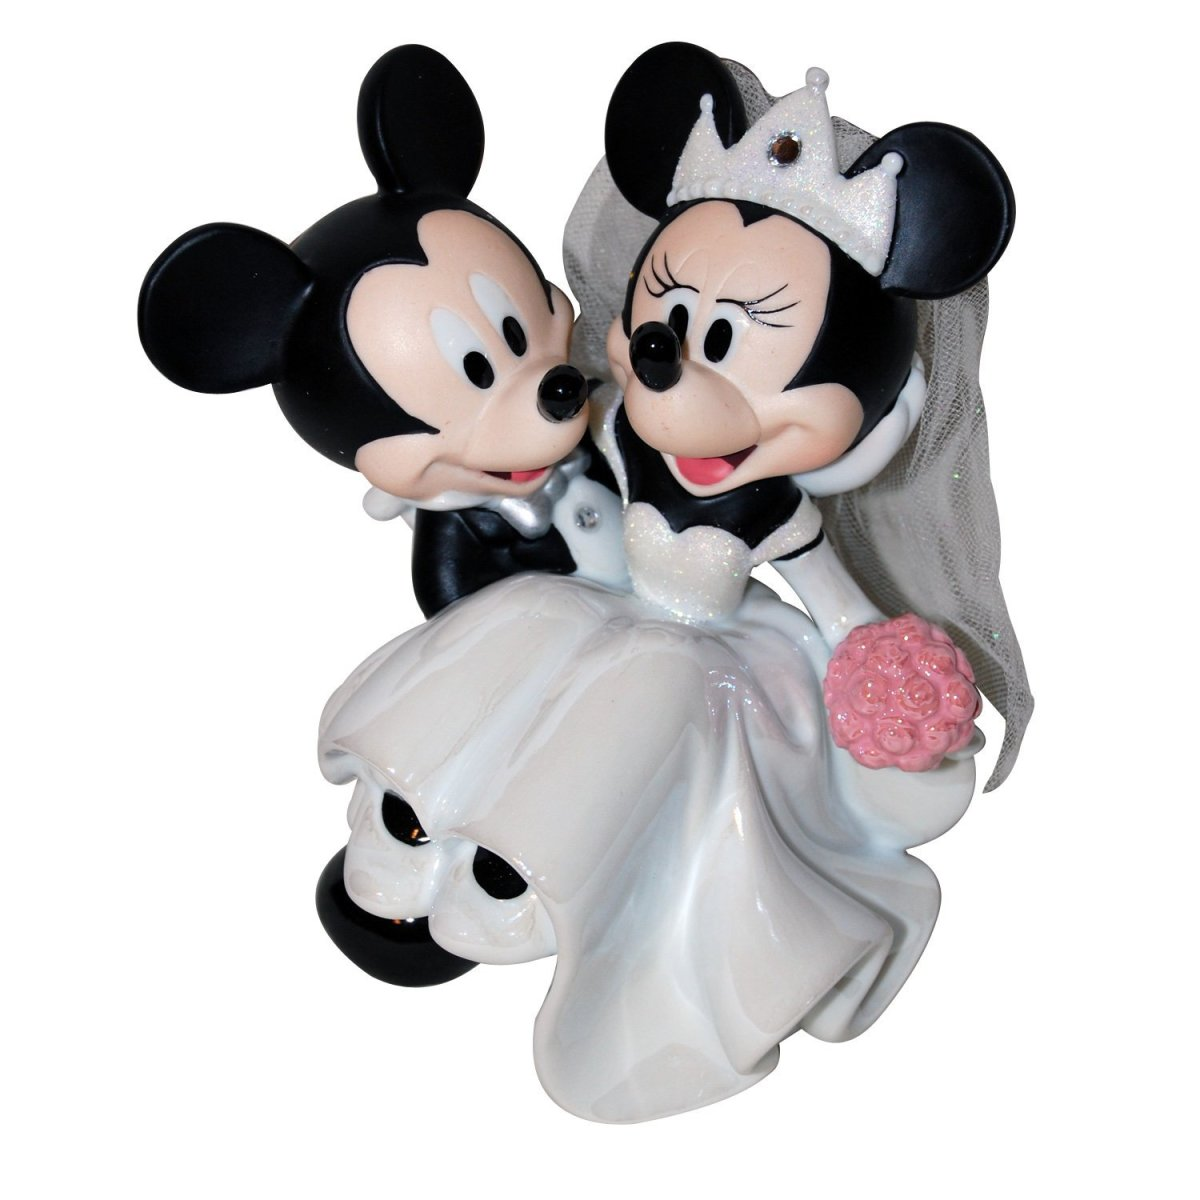 The Best Mickey and Minnie Wedding Cake Toppers